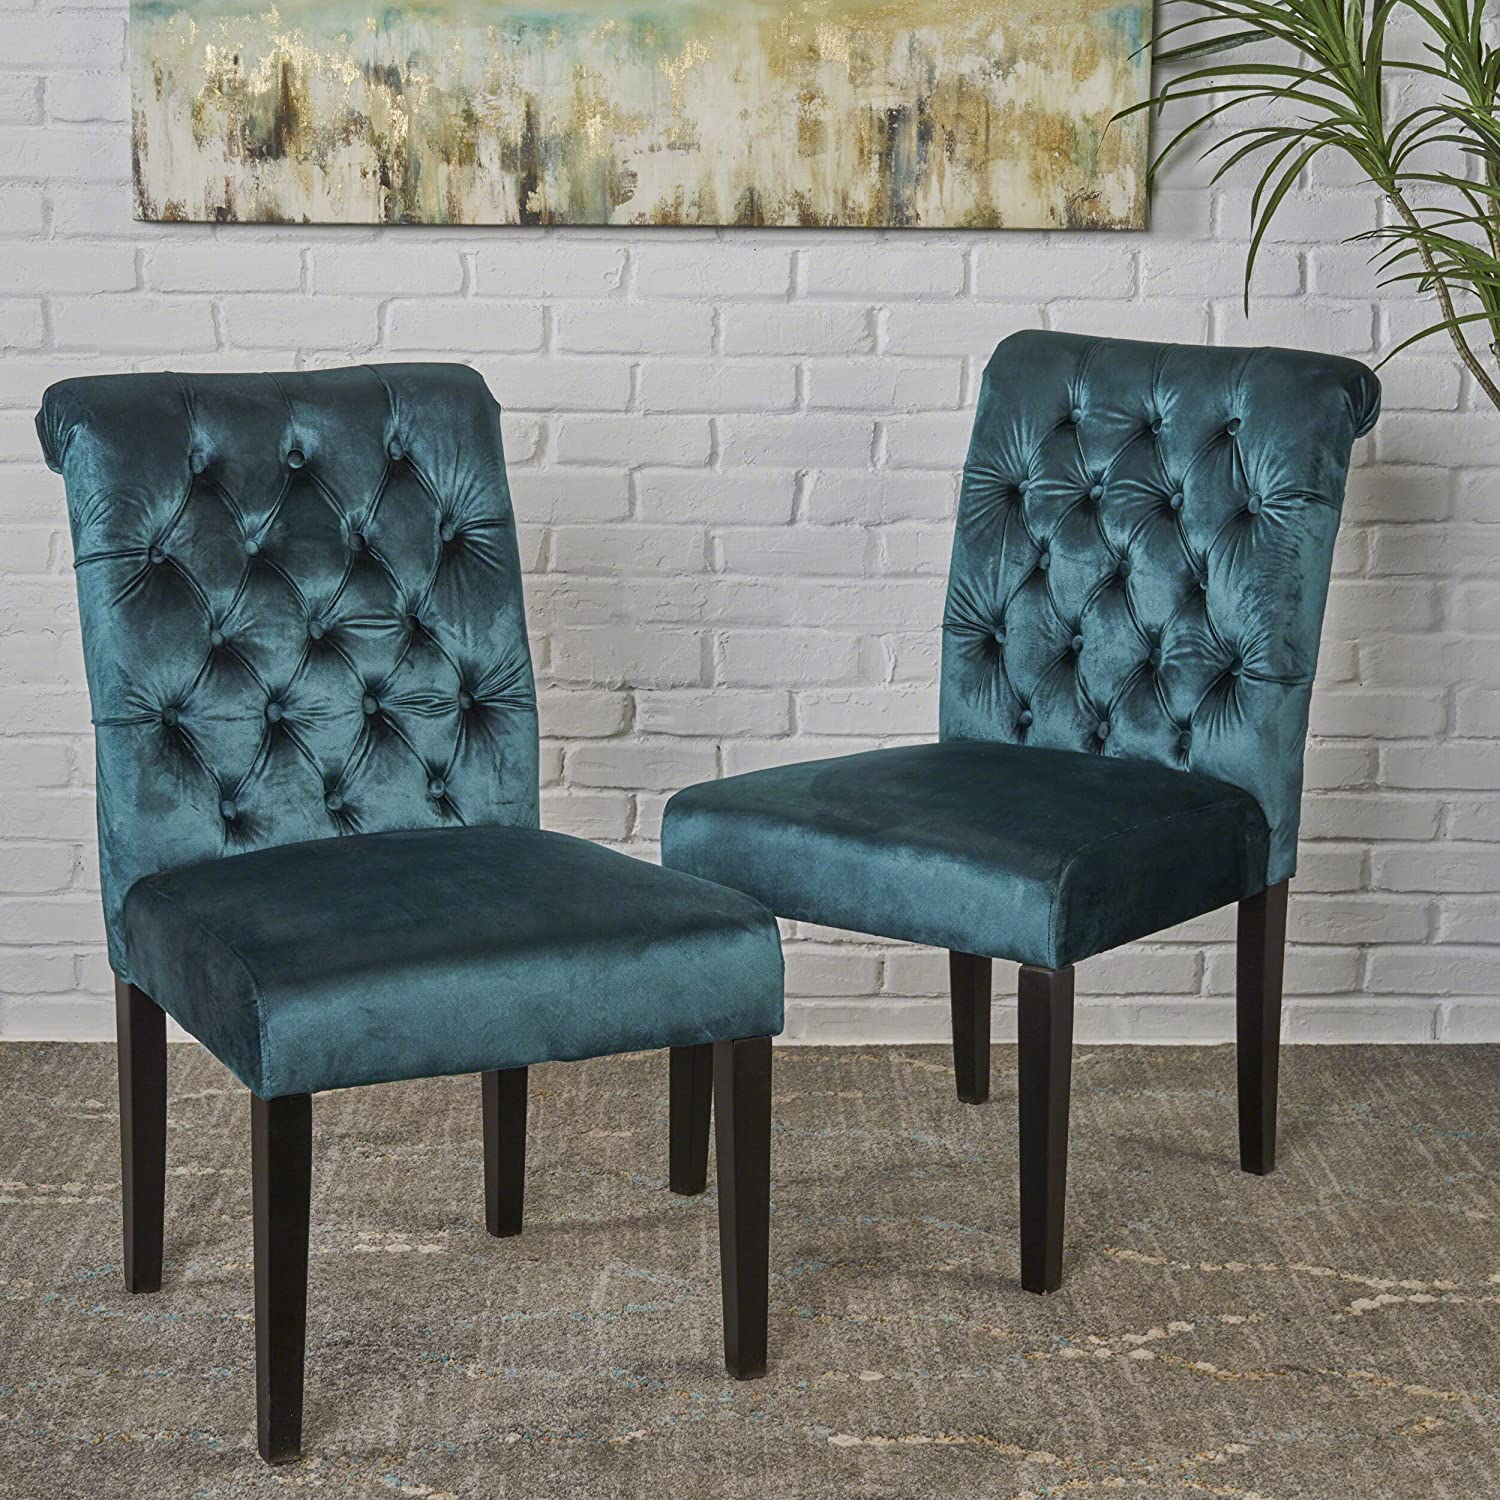 Amazon.com - Deanna Tufted Teal Velvet Dining Chair with Roll Top (Set of 2) - Chairs & Amazon.com - Deanna Tufted Teal Velvet Dining Chair with Roll Top ...